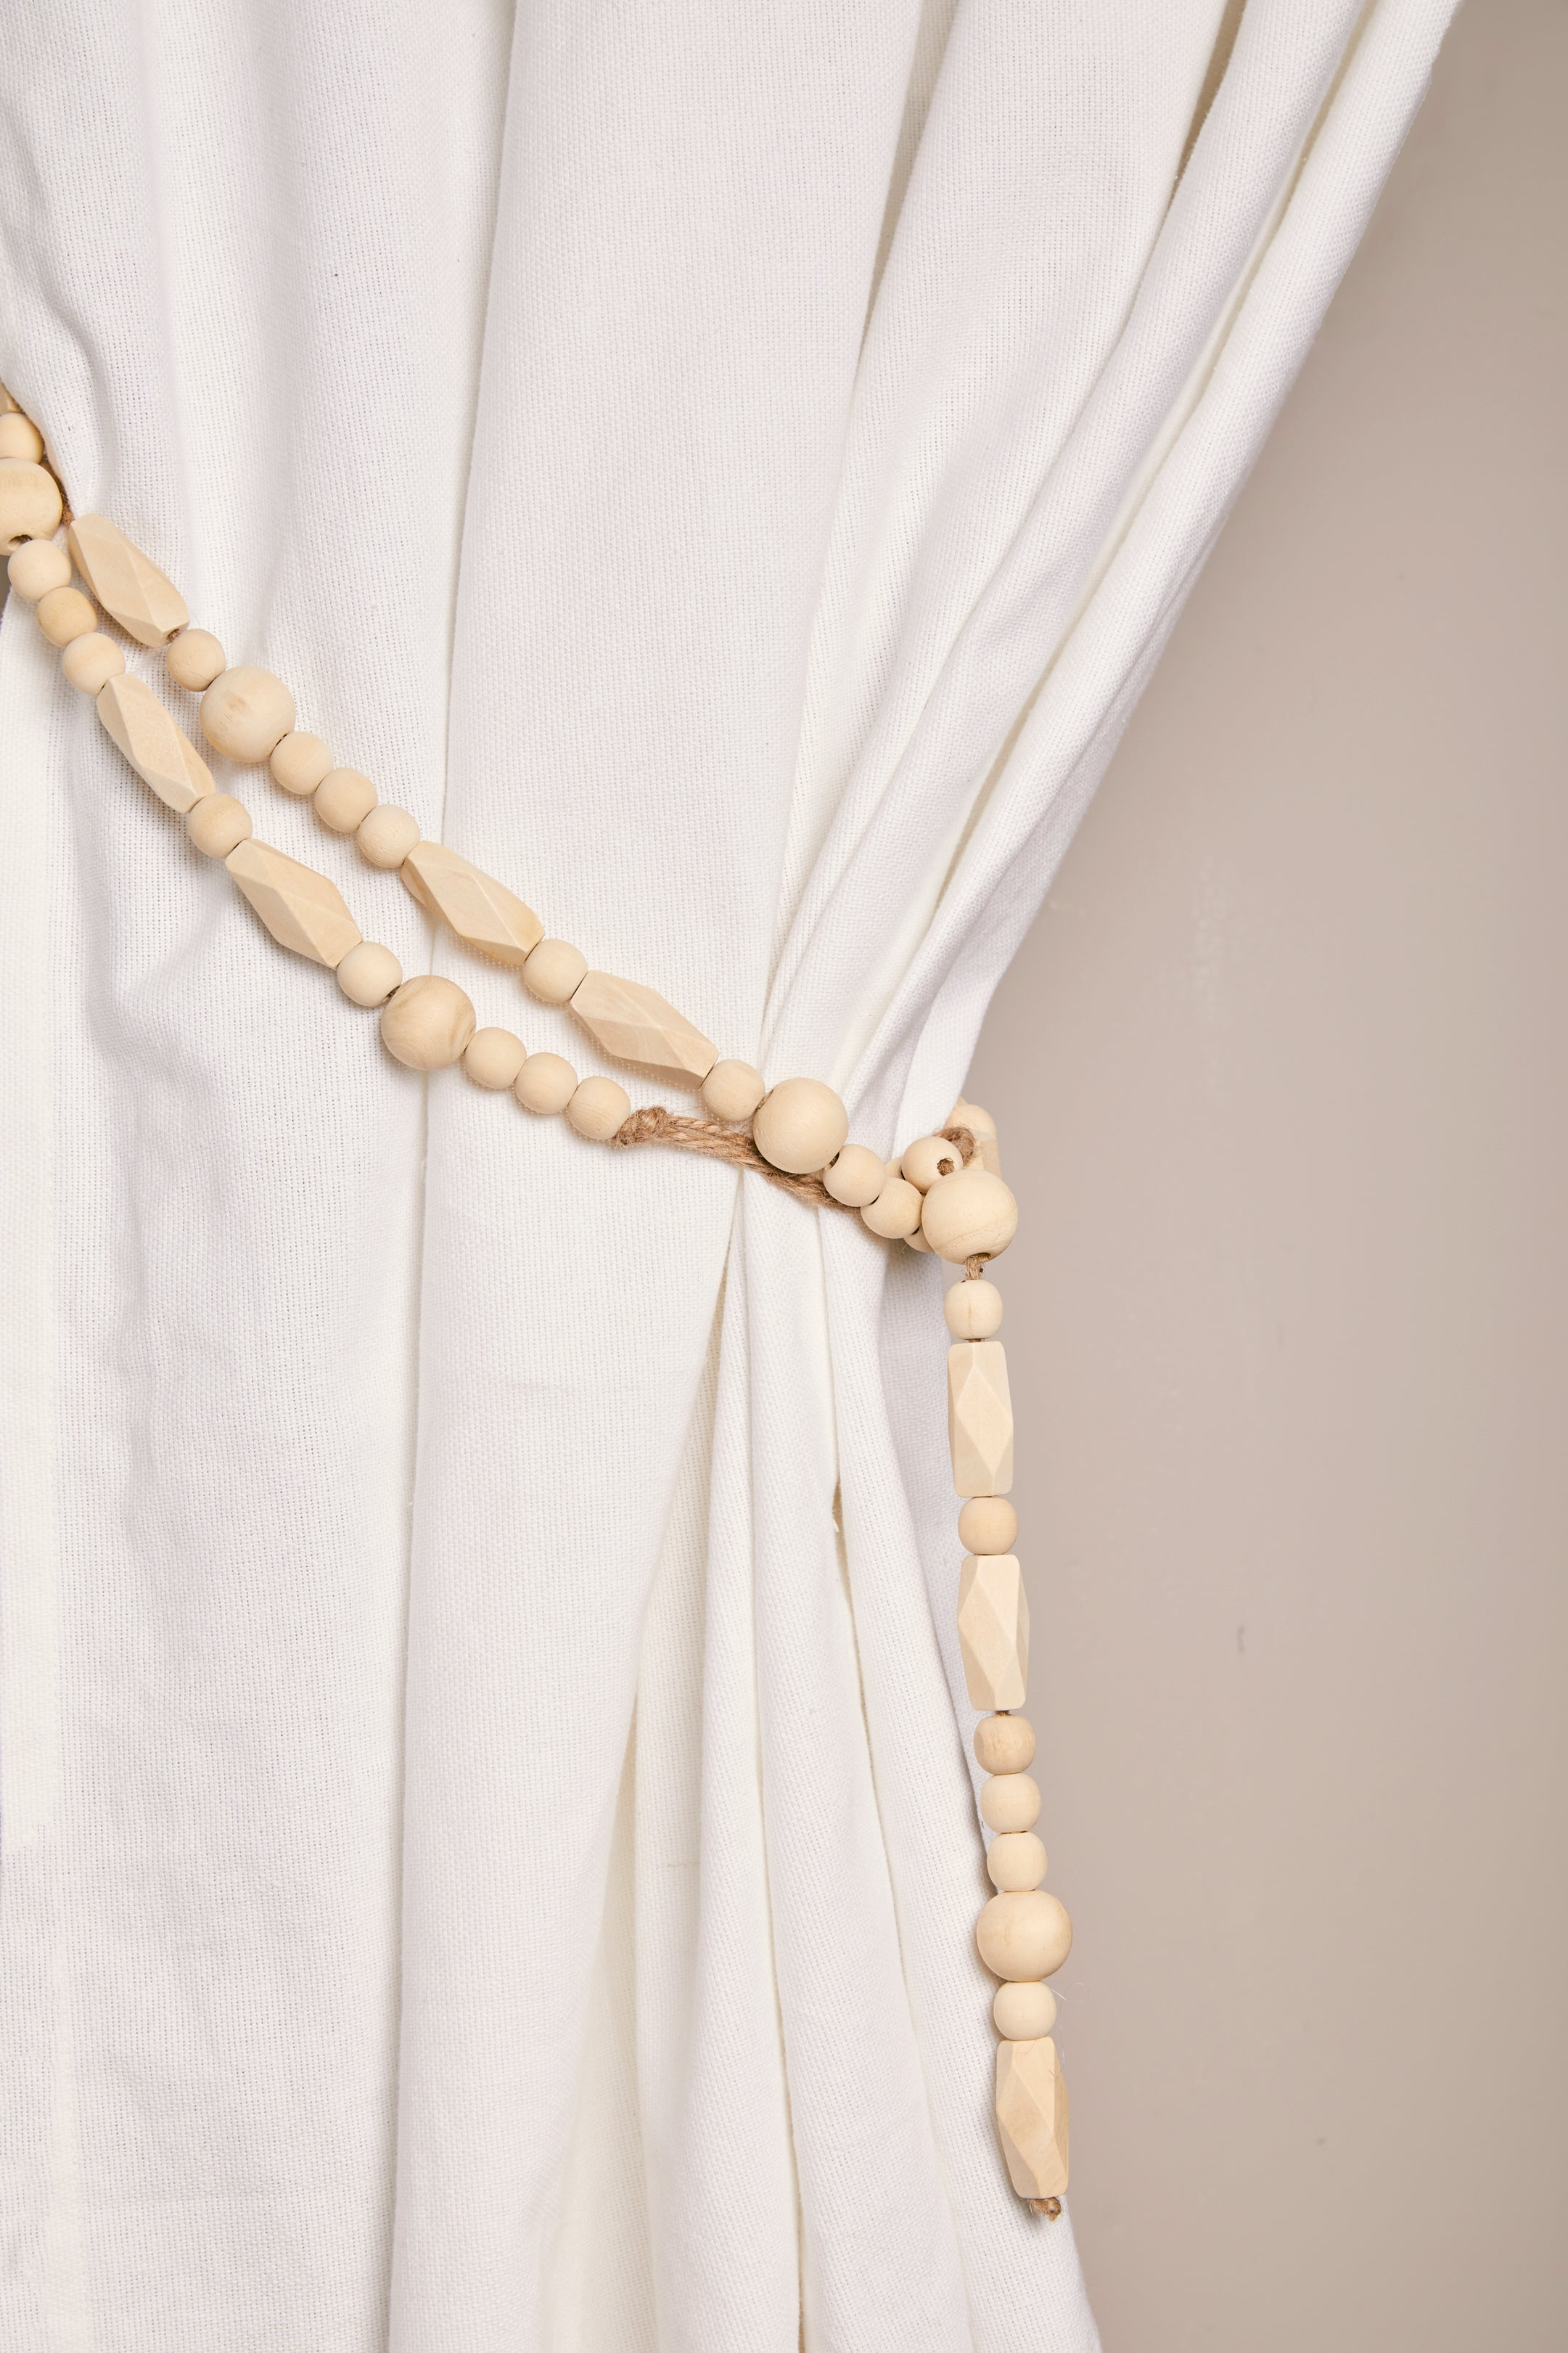 Paulownia Wood Bead Garland - picnic-sf